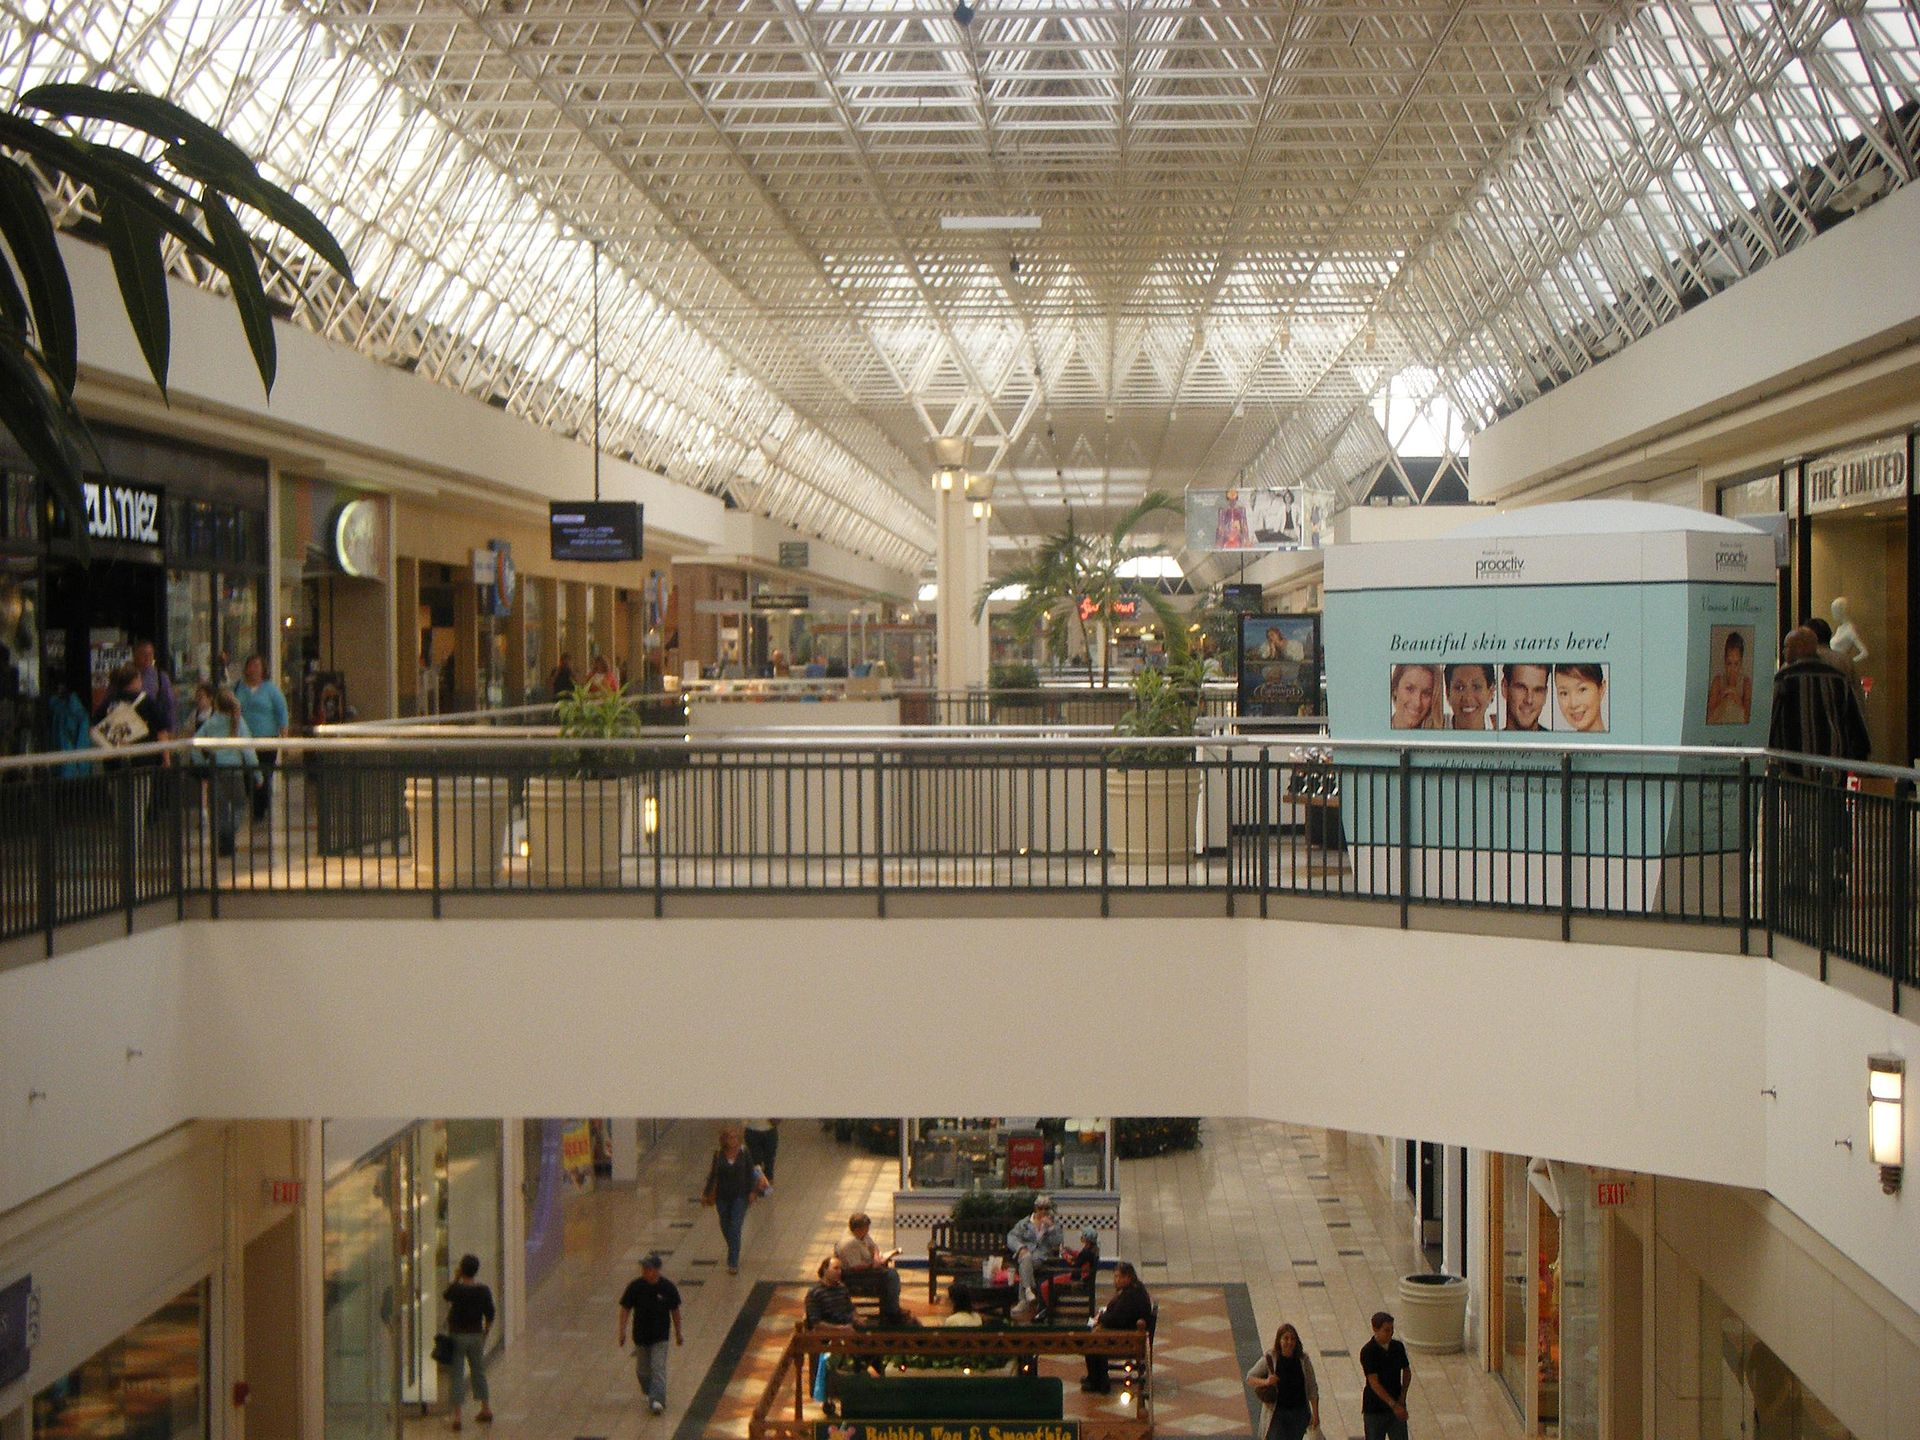 Oxford Valley Mall Wikipedia